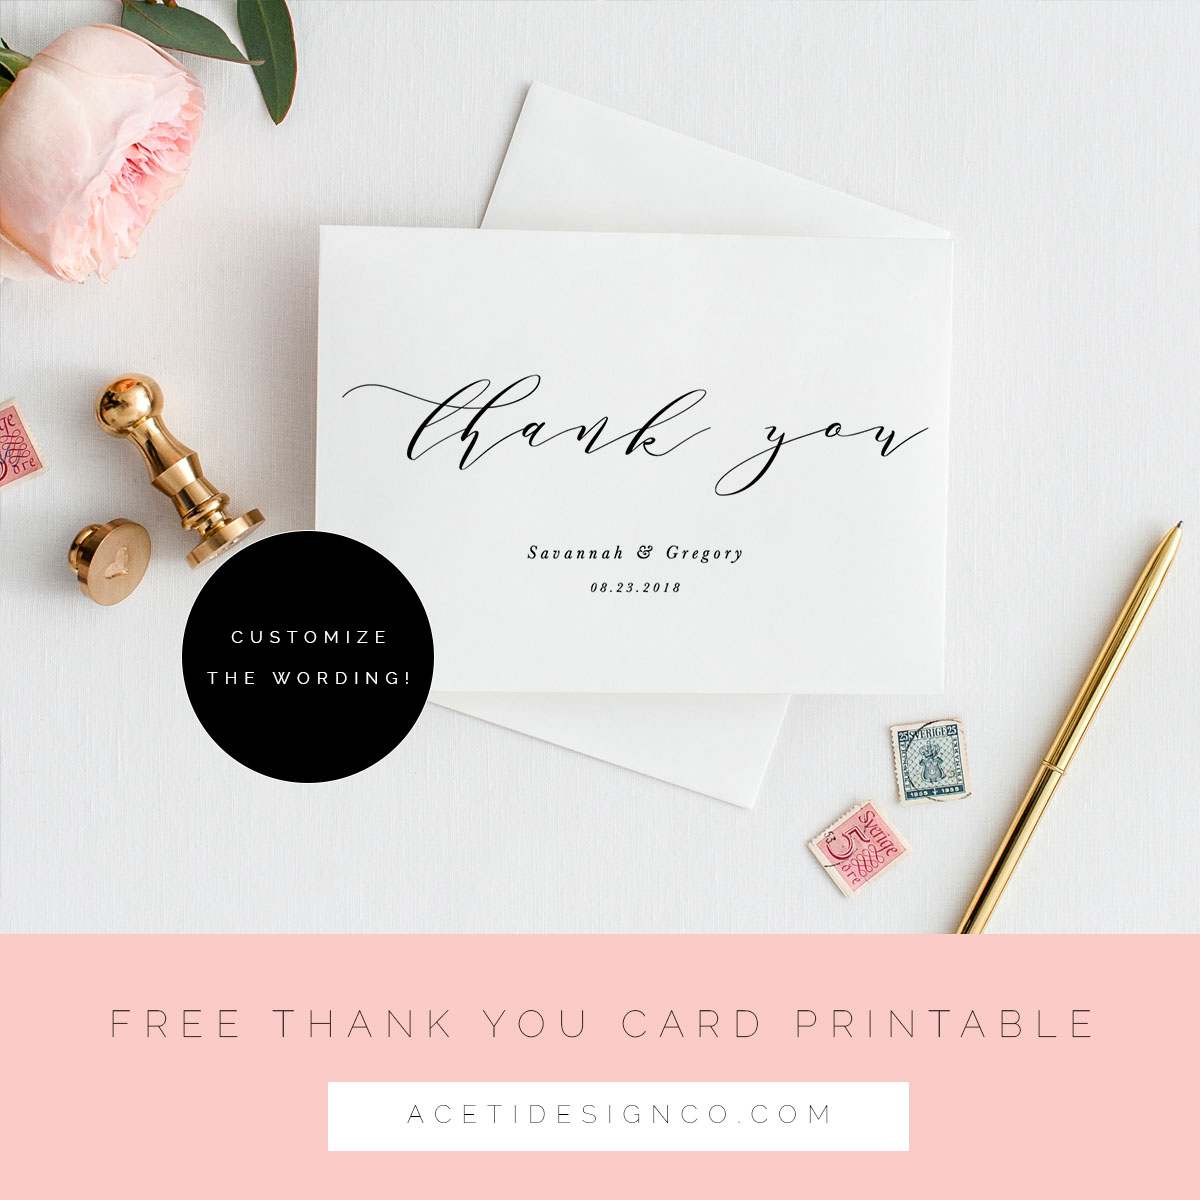 Free editable PDF Thank you Card Printable | Aceti Design Co.